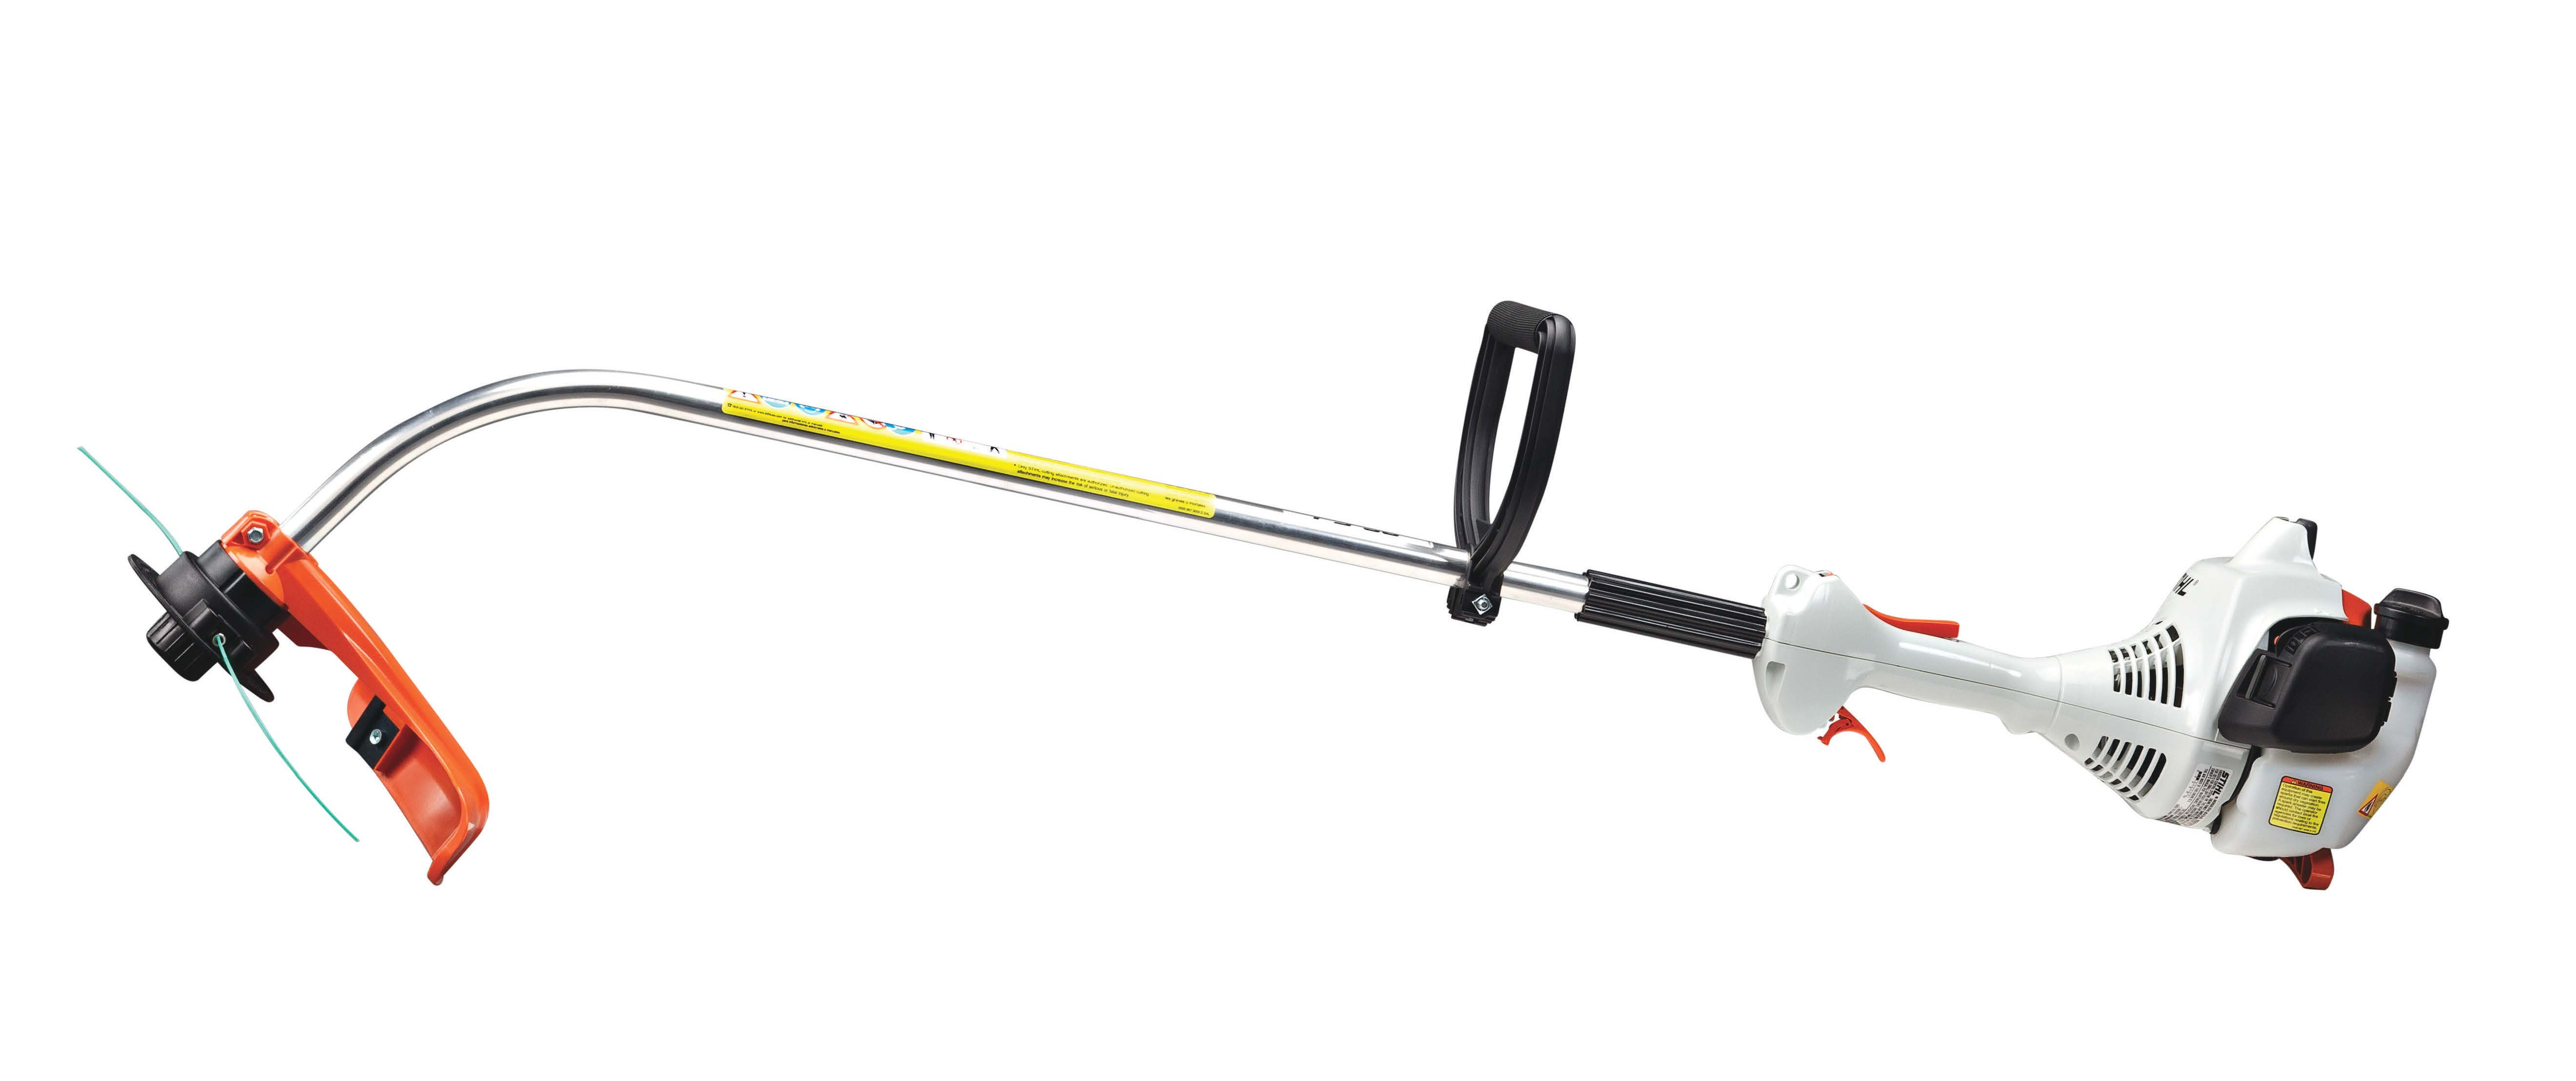 FS 38 Weed Trimmer